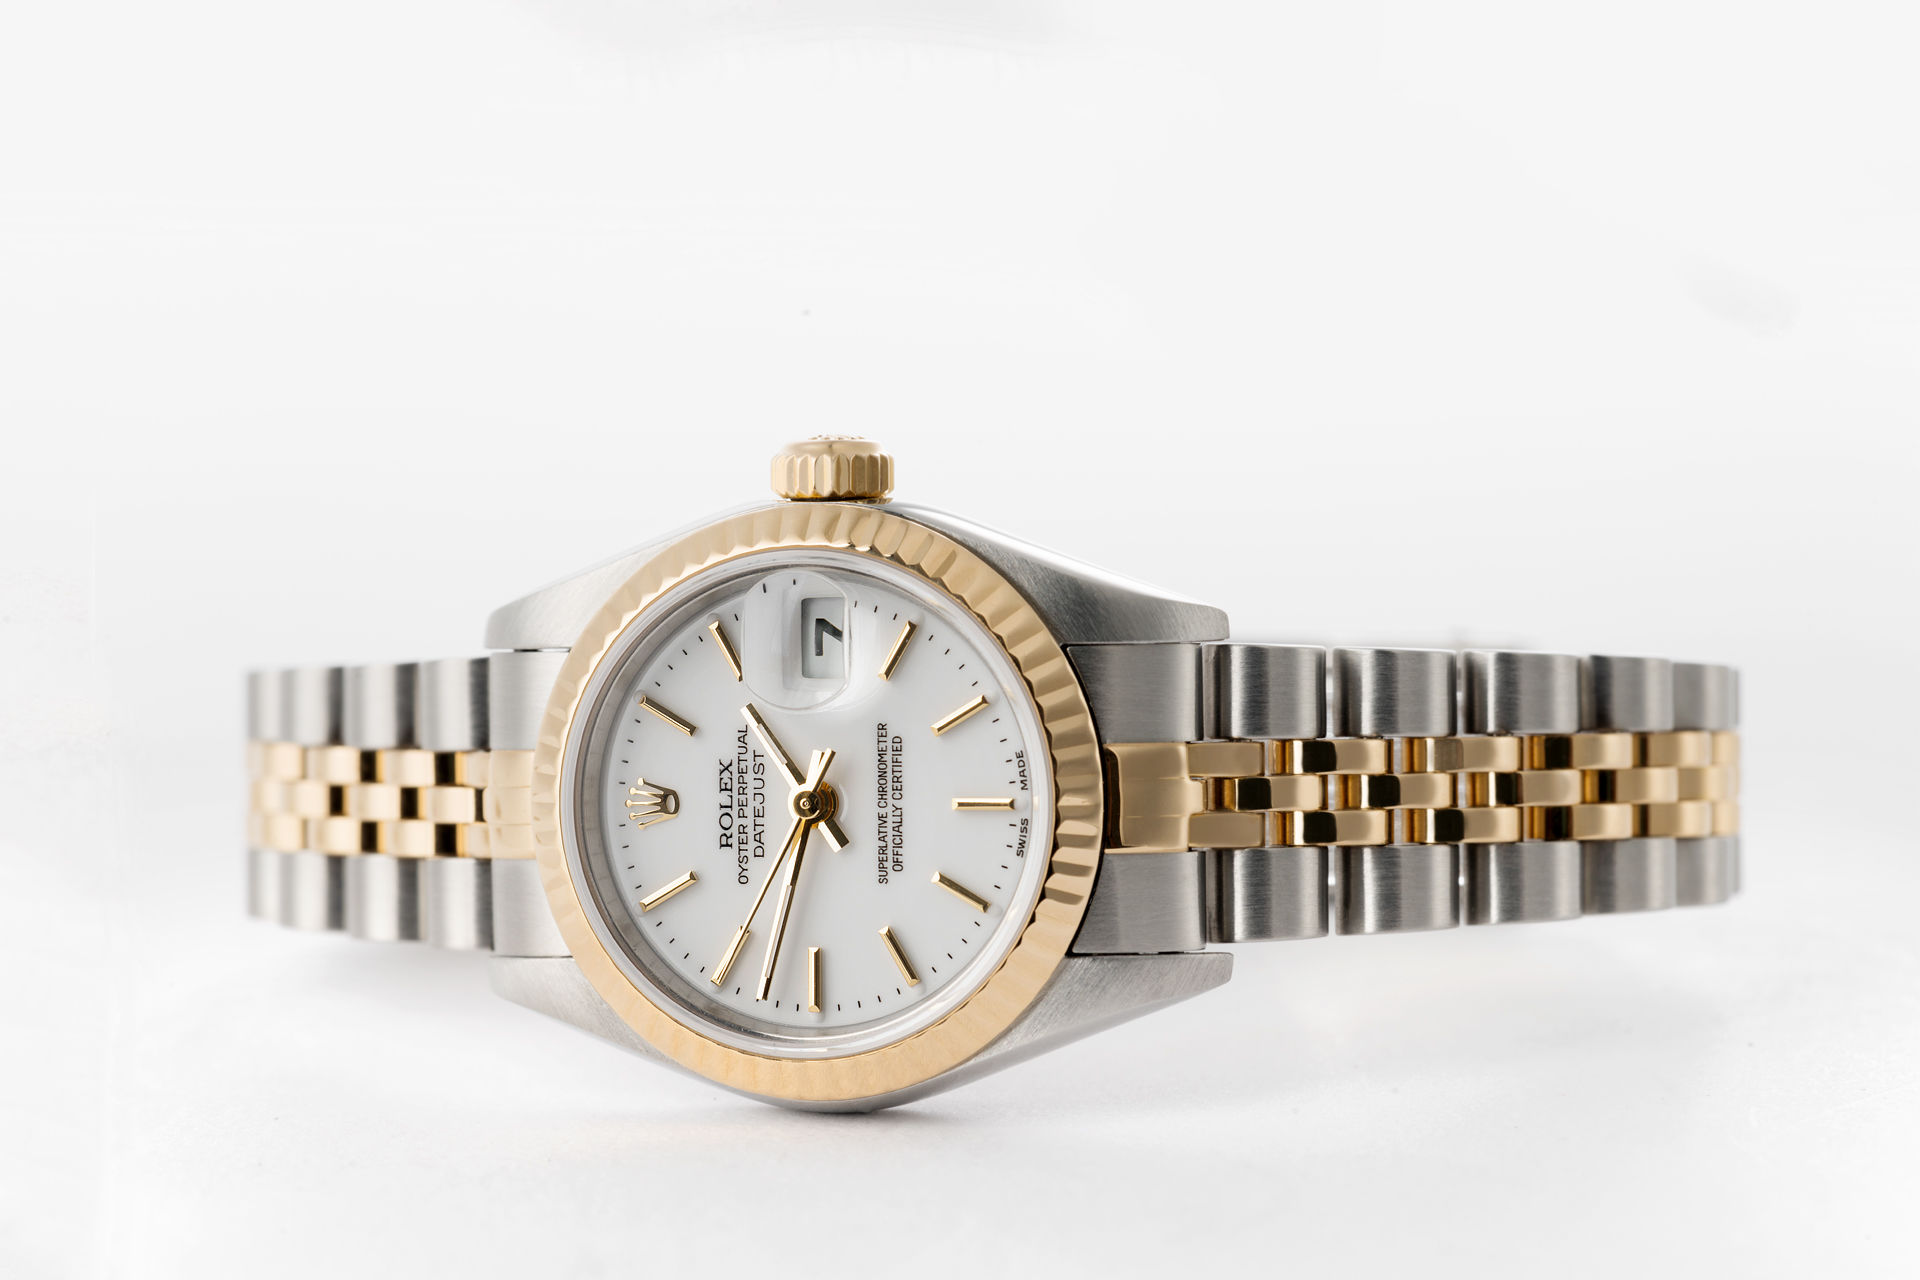 ref 79173 | Gold & Steel 'Box & Papers' | Rolex Lady-Datejust